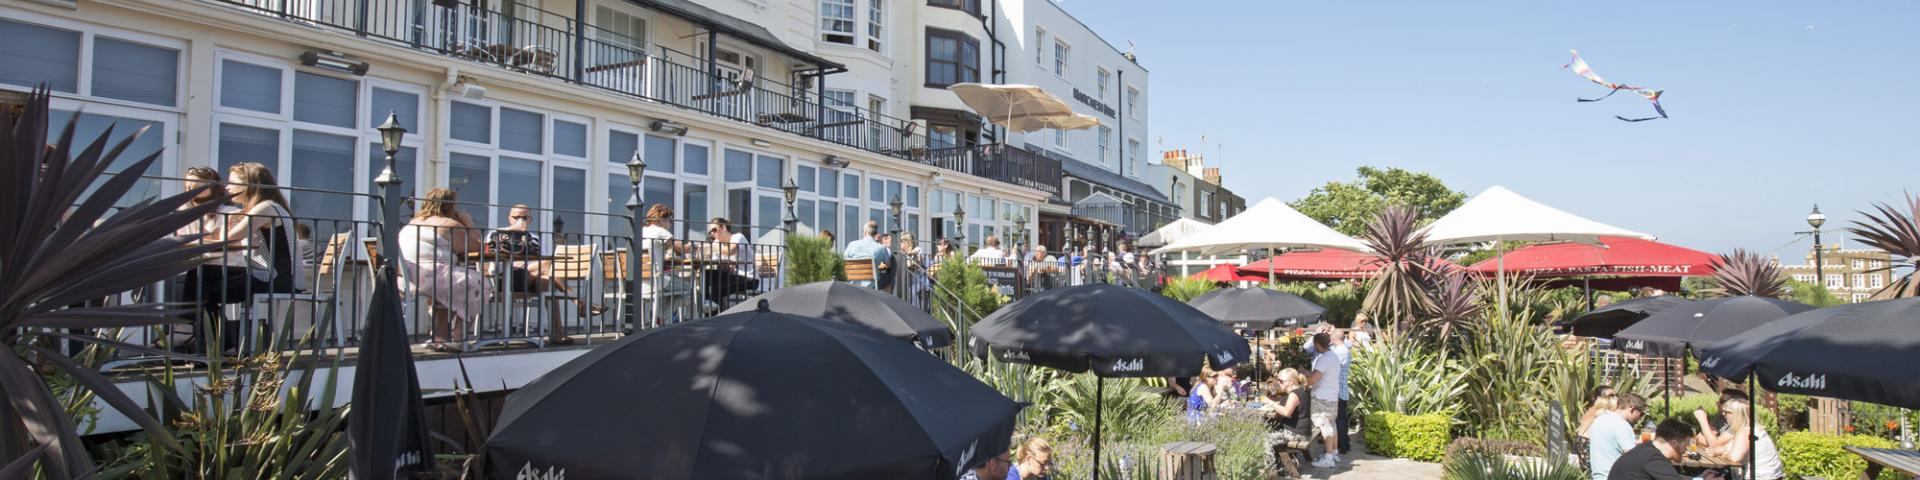 Royal Albion, Broadstairs - Terrace